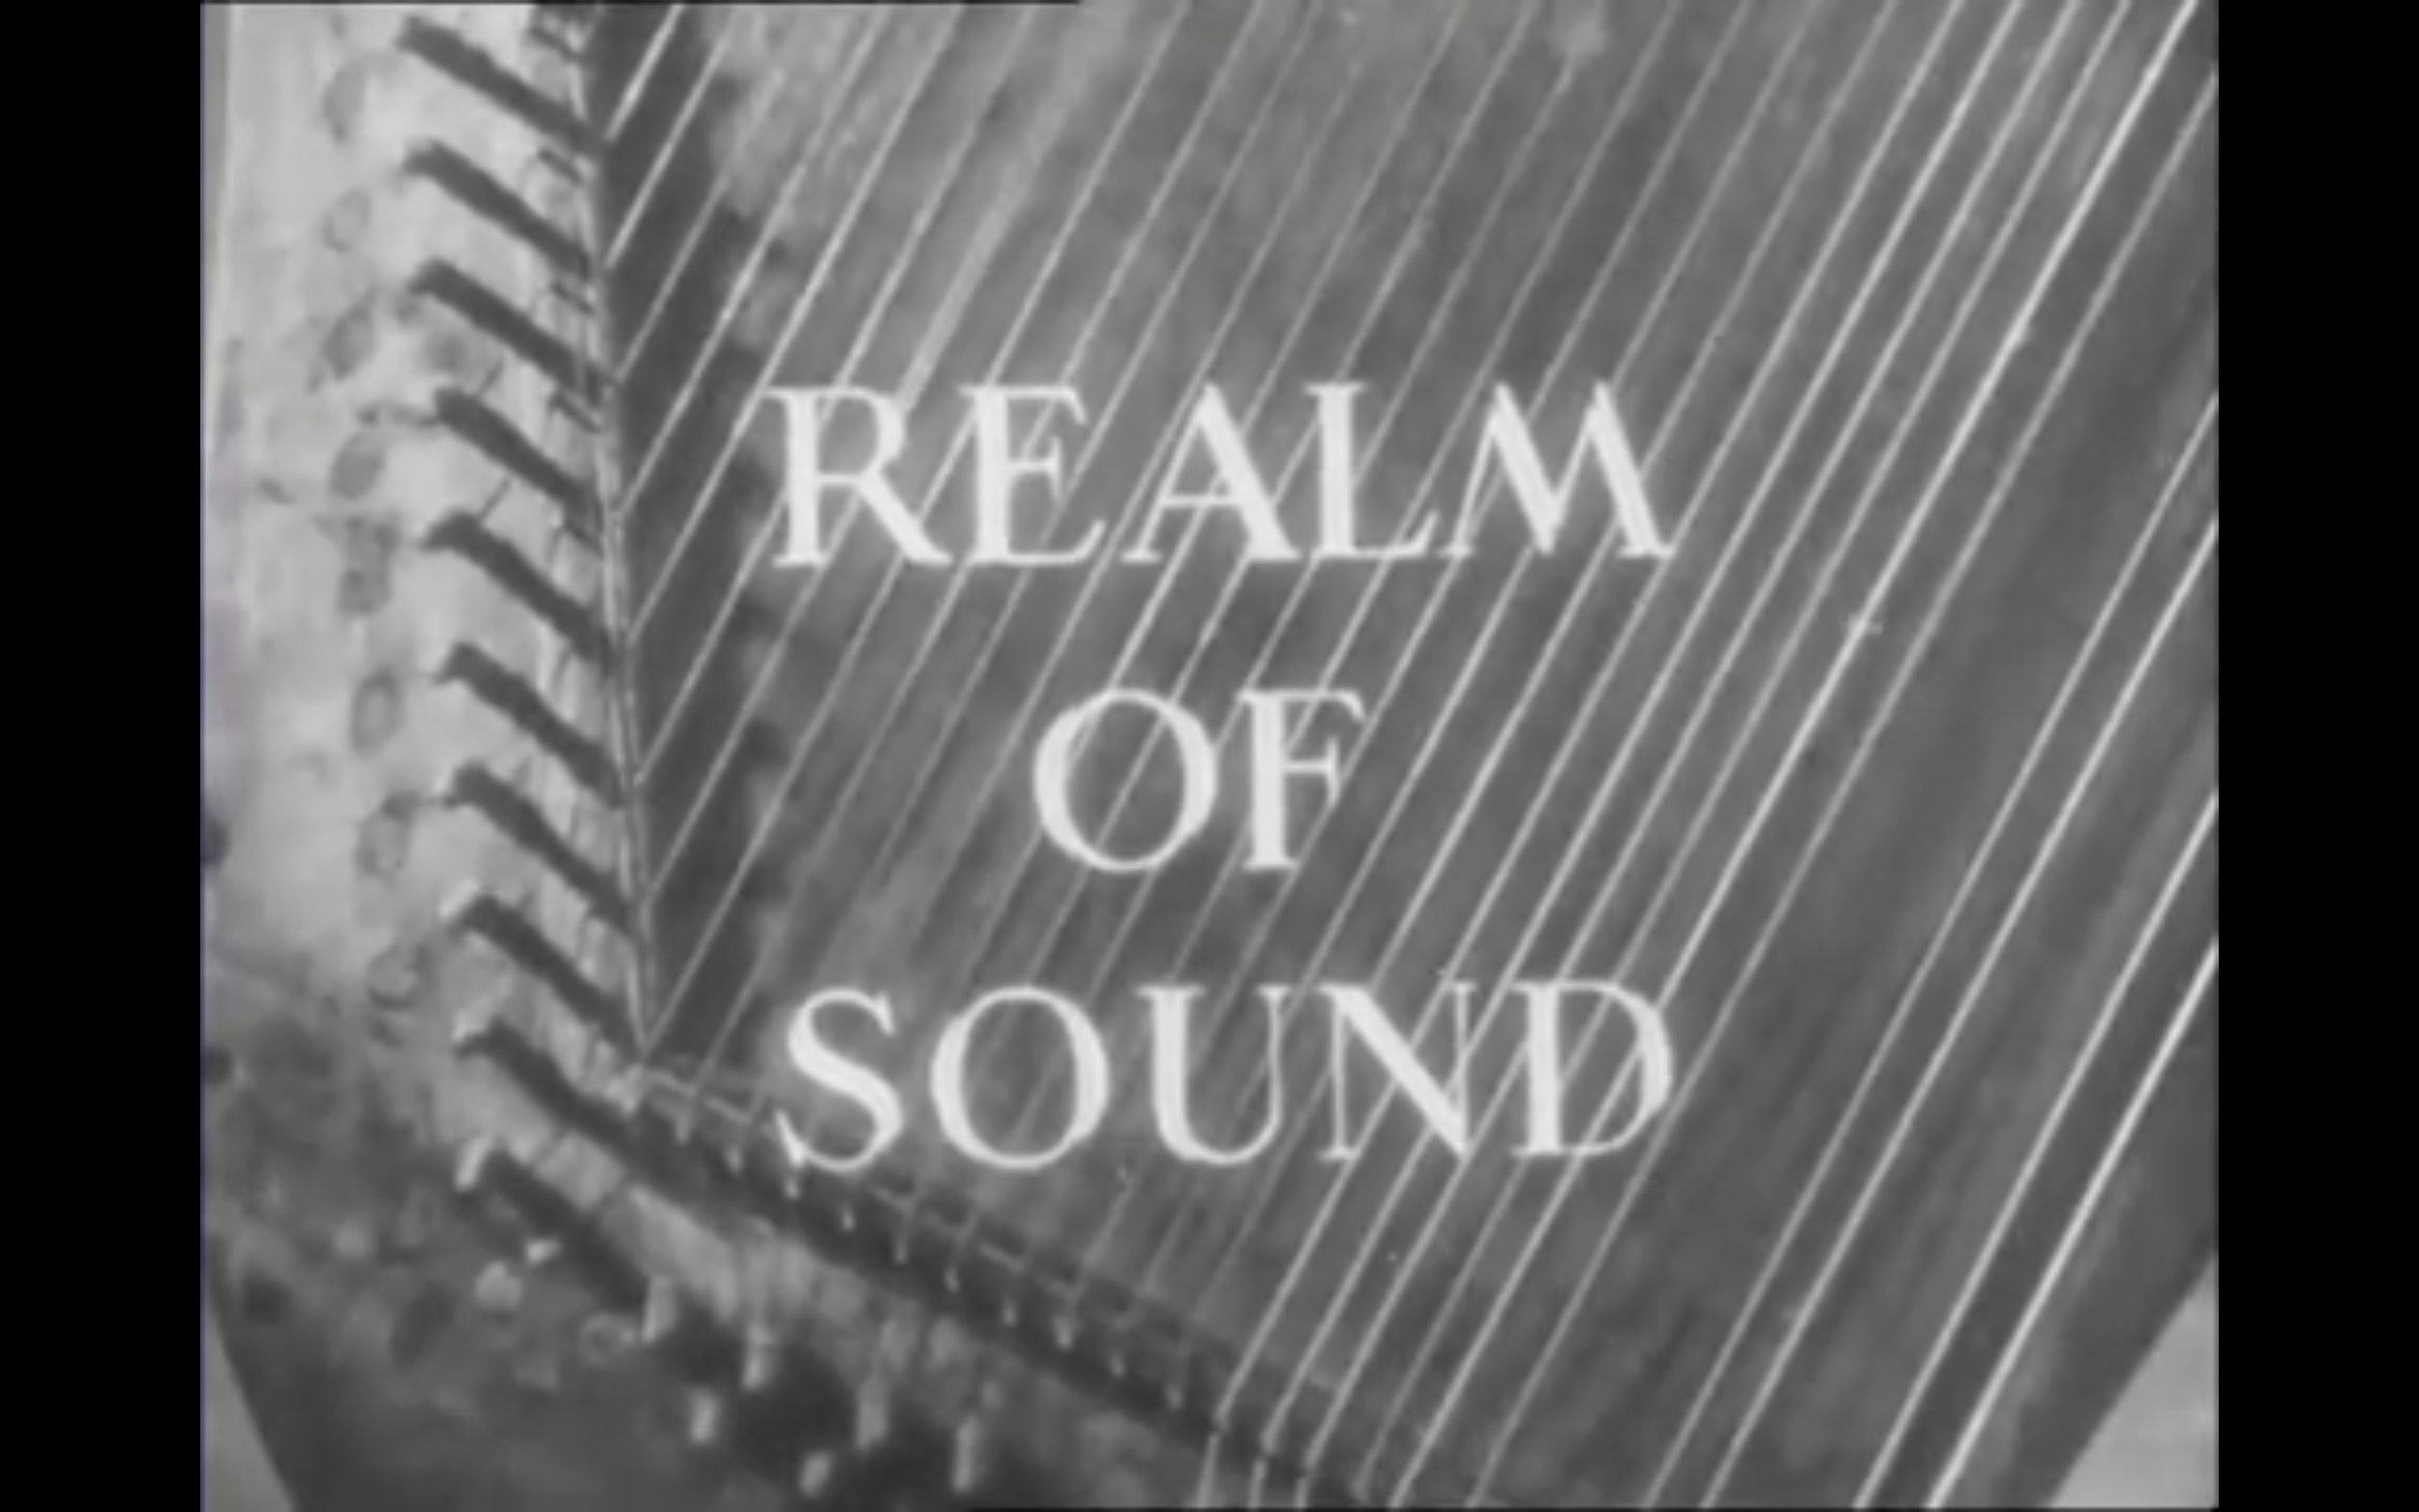 Realm of Sound- Film Still 10.jpg